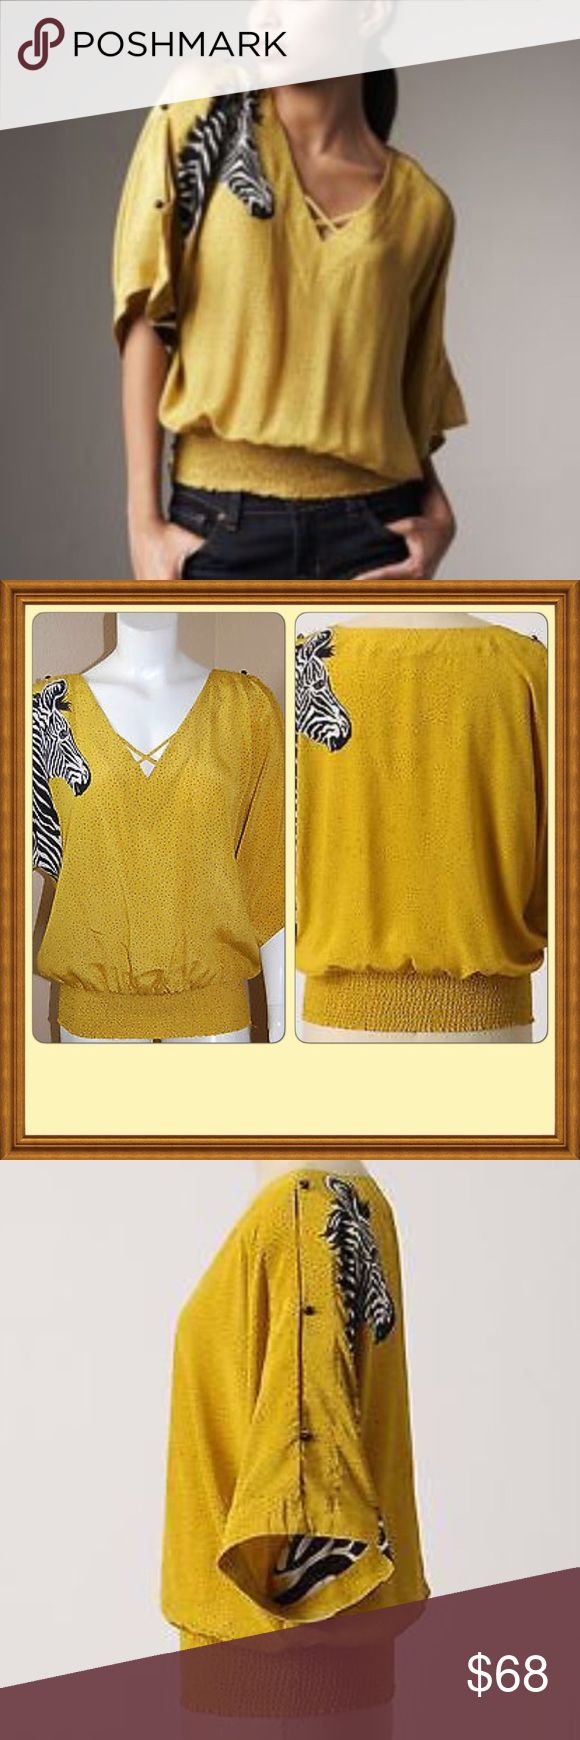 Rare Anthro Leifsdottir yellow zebra batwing top Worn a handful of times but very well taken care of.  An inquisitive zebra is printed on the front and back of a brightly hued pin dot pattern top with an easy, relaxed silhouette. Smooth, silky style is topped with tiny buttons along the split dolman sleeves, while a smocked hem finishes this statement piece. Anthropologie Tops